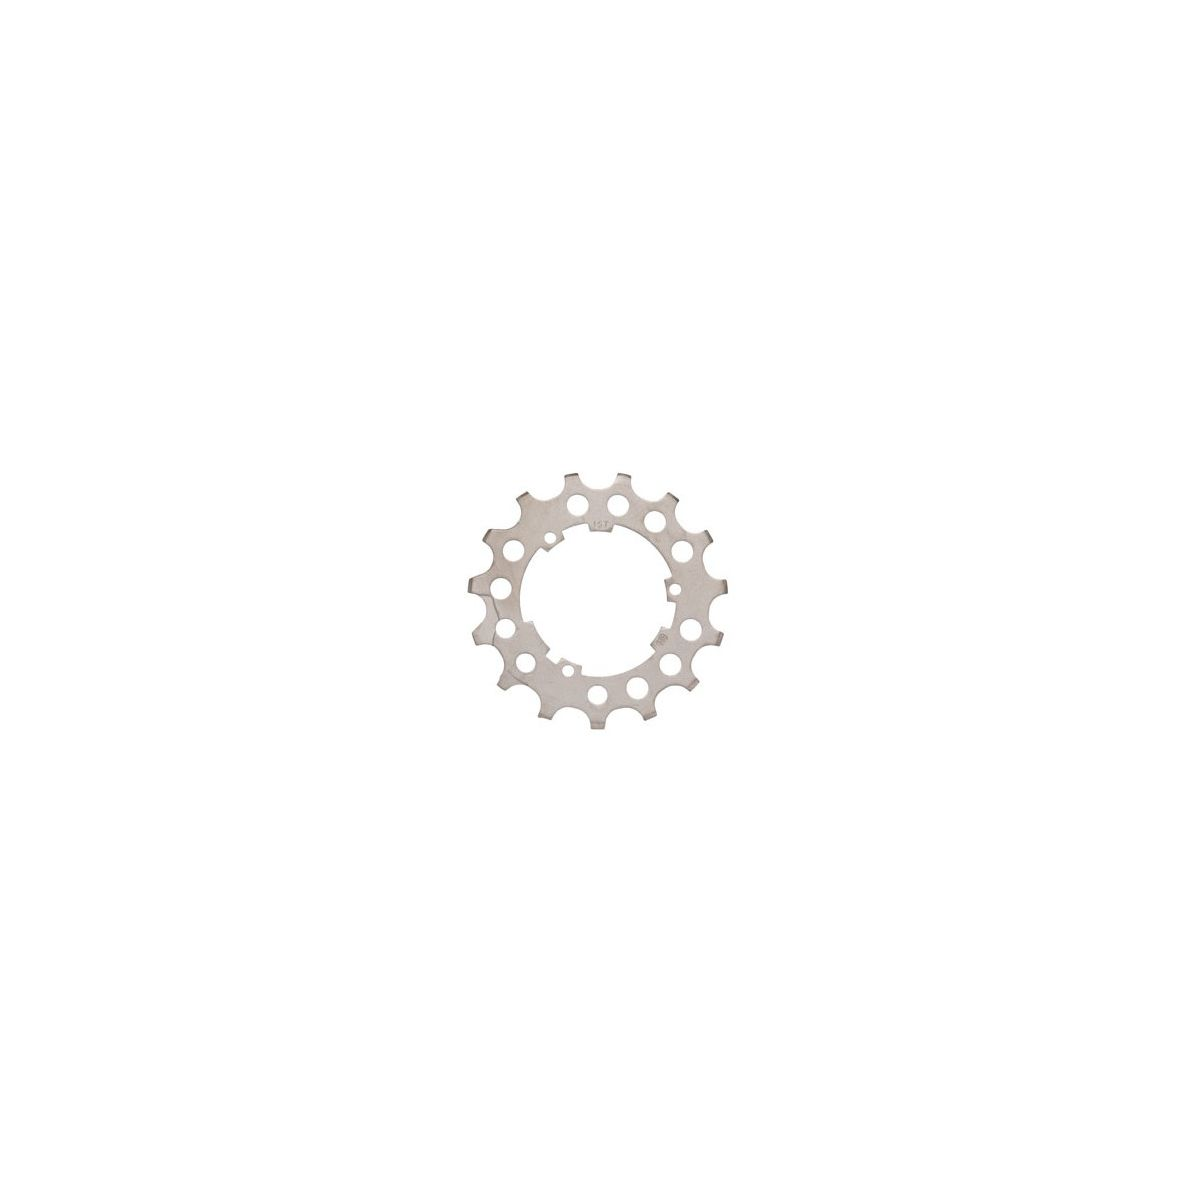 Ultegra/Dura Ace CS-6600/7800 10-speed, 15-tooth replacement sprocket